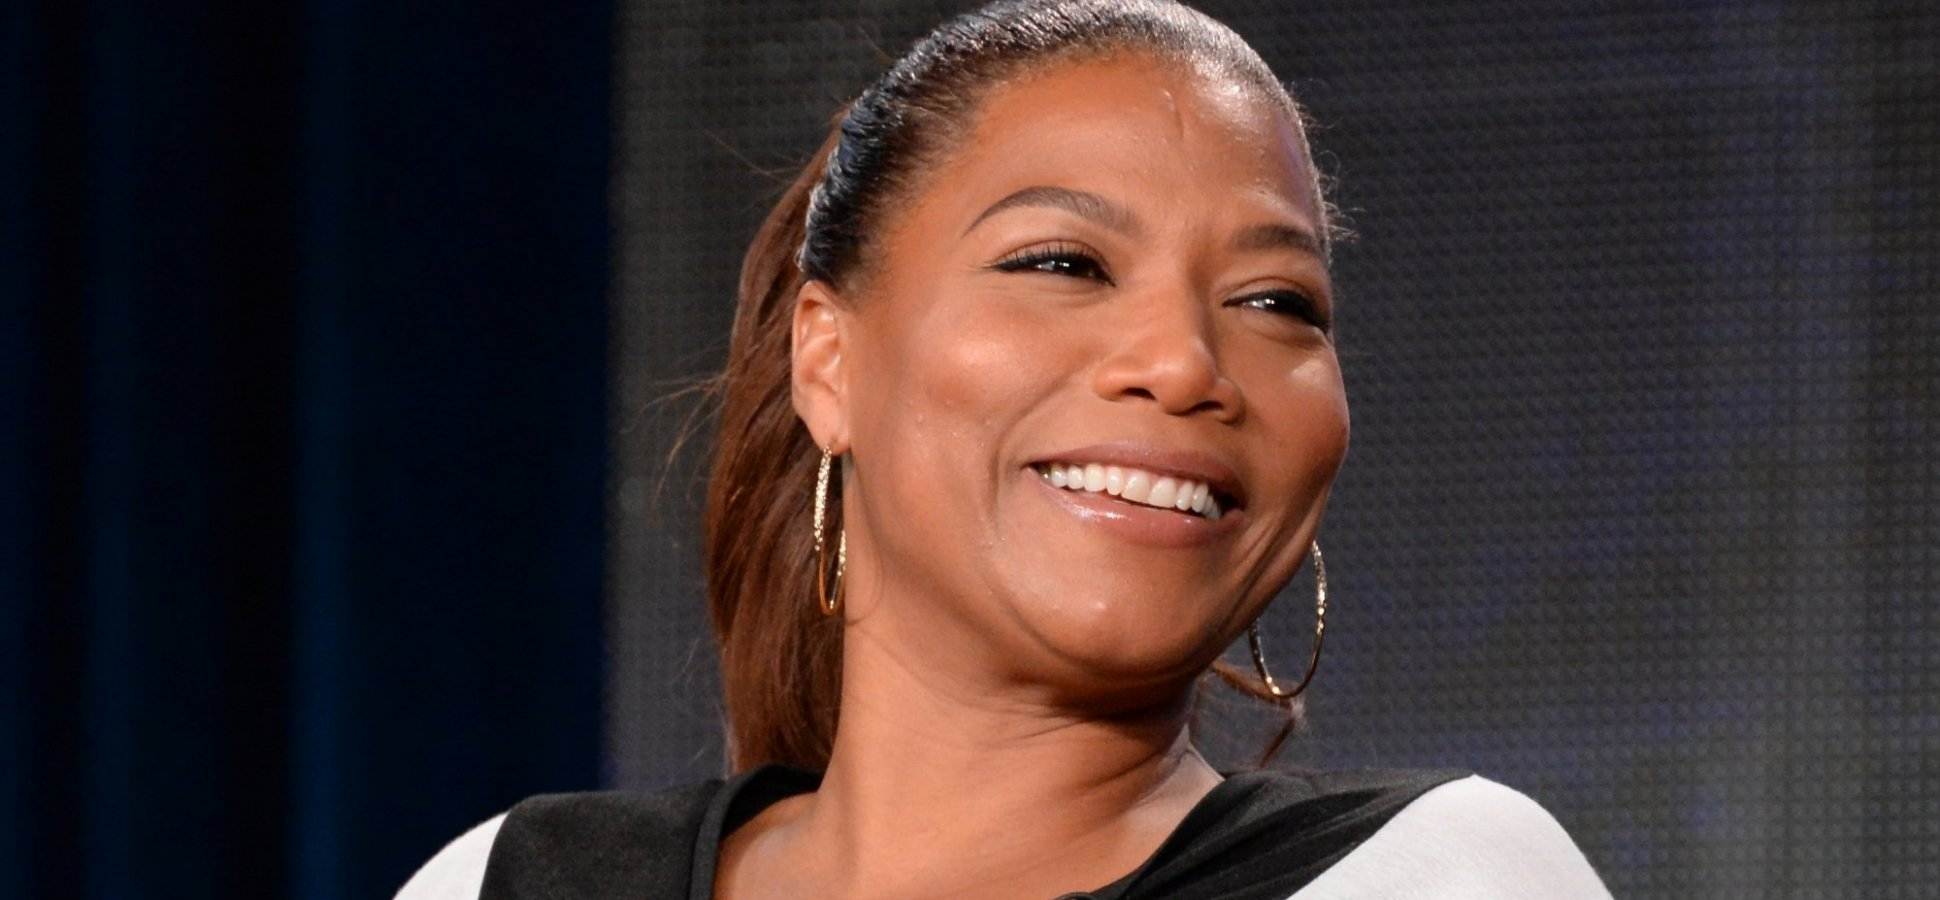 Snapchat Queen Latifah nude (67 photos), Topless, Leaked, Feet, in bikini 2020